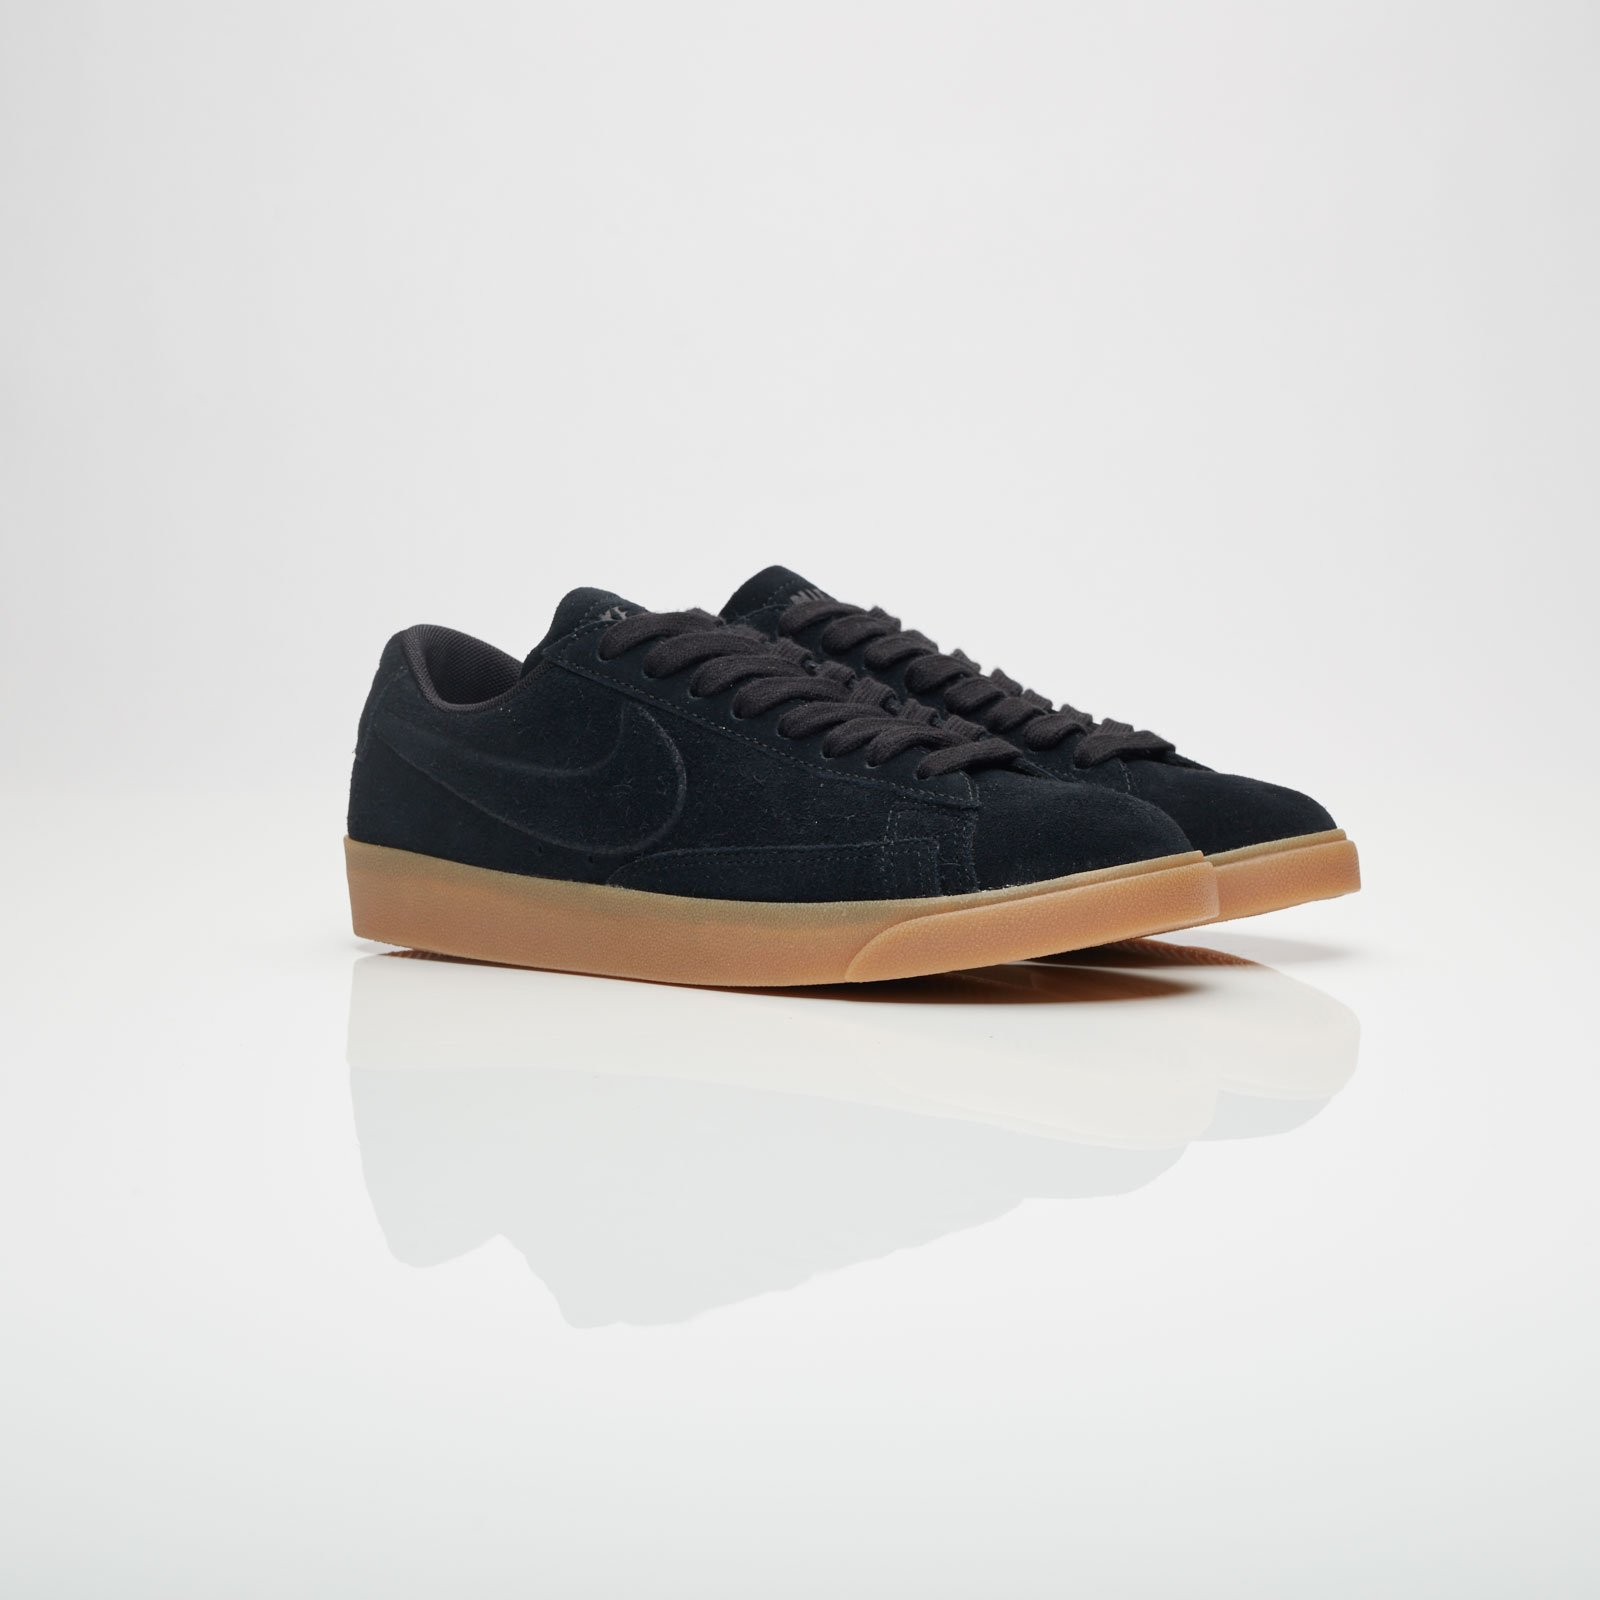 half off 46c7a 1e433 Nike W Blazer Low SD - Aa3962-002 - Sneakersnstuff ...